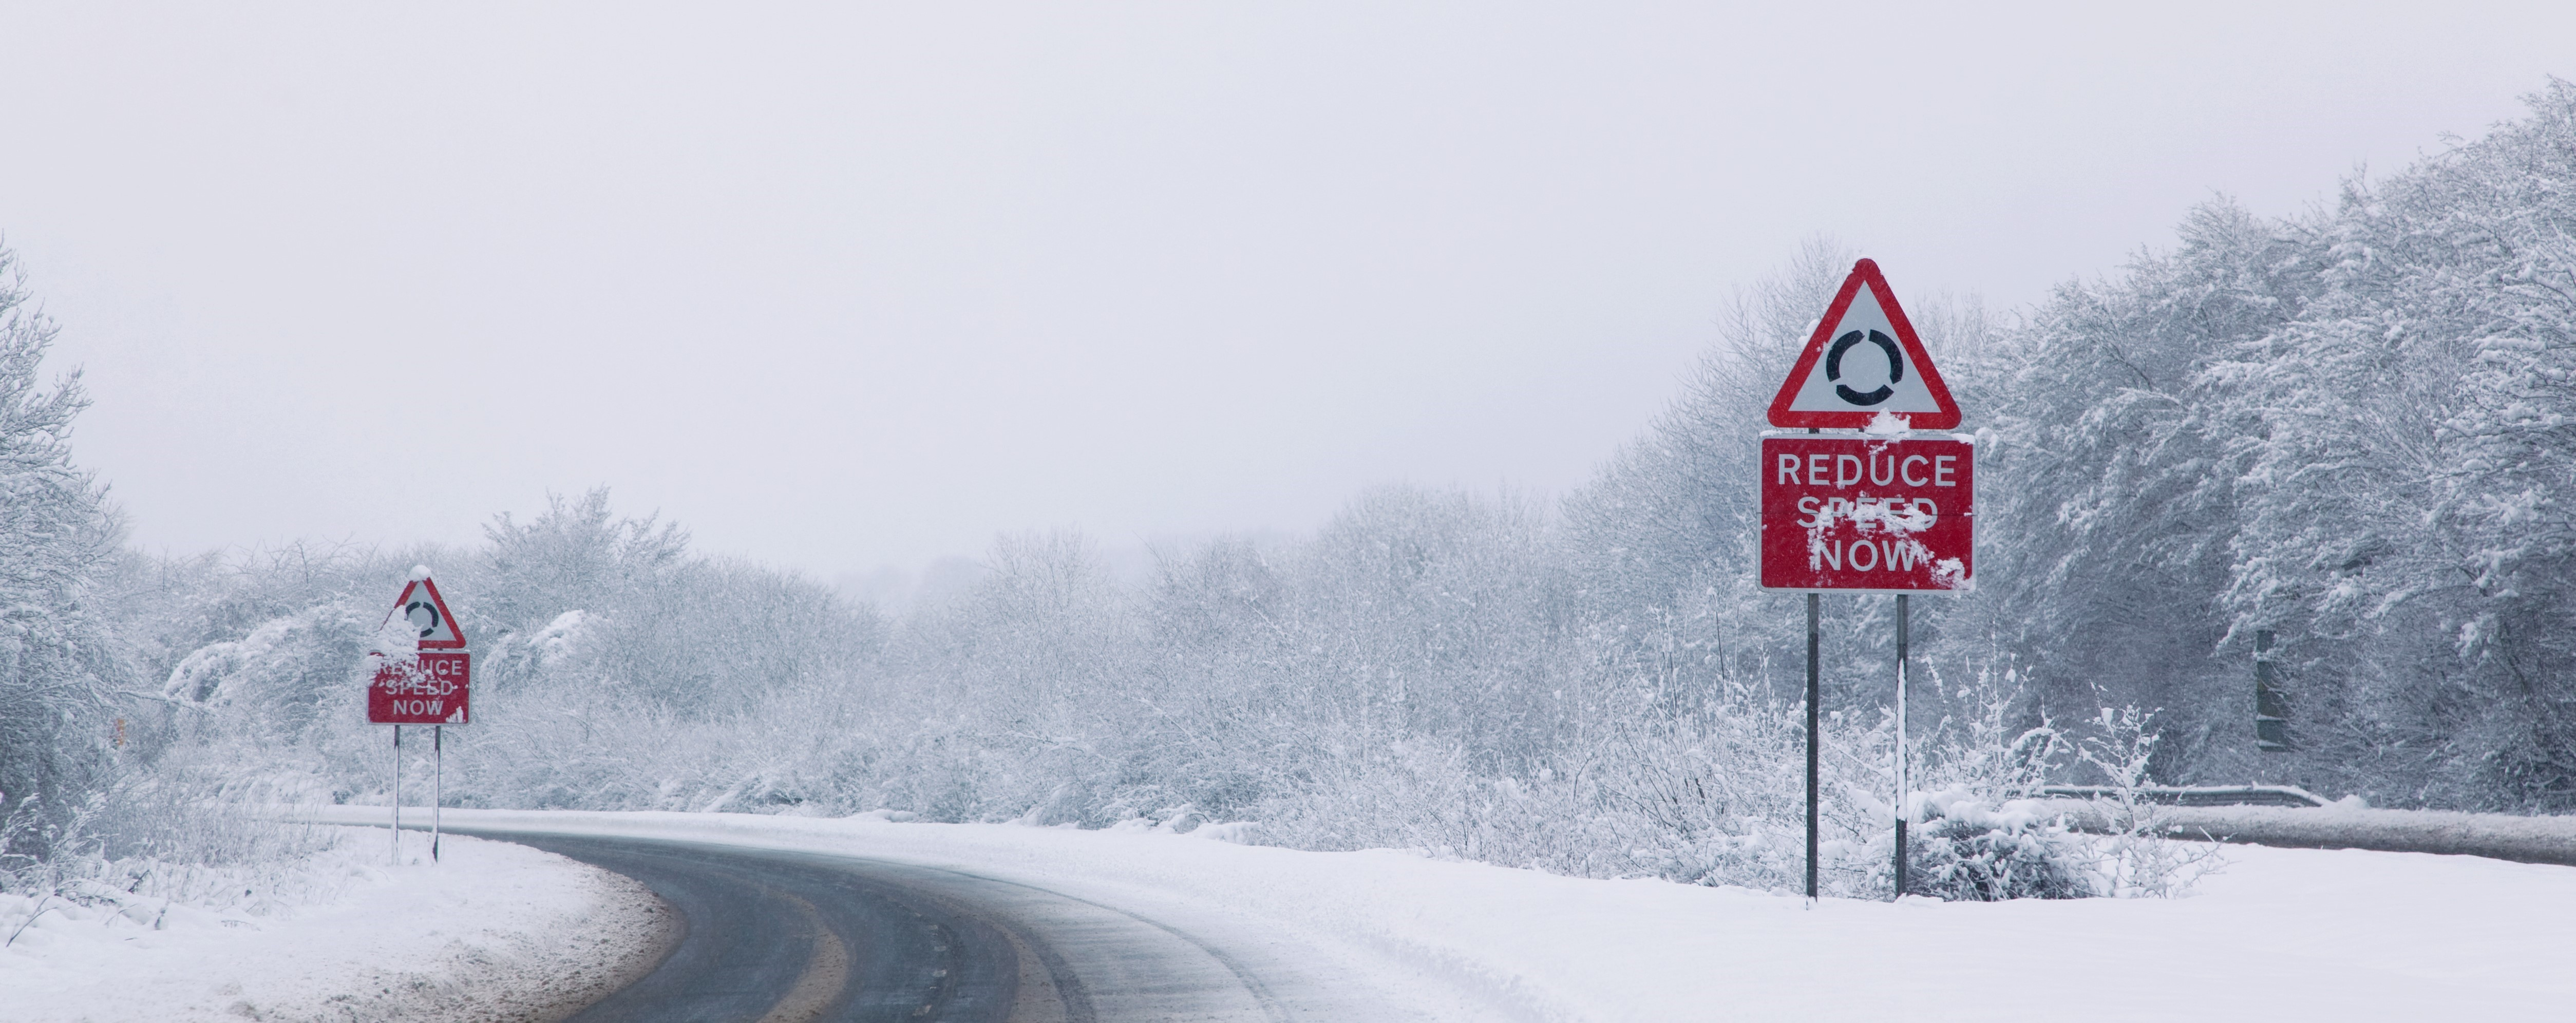 Do you have a winter driving policy?